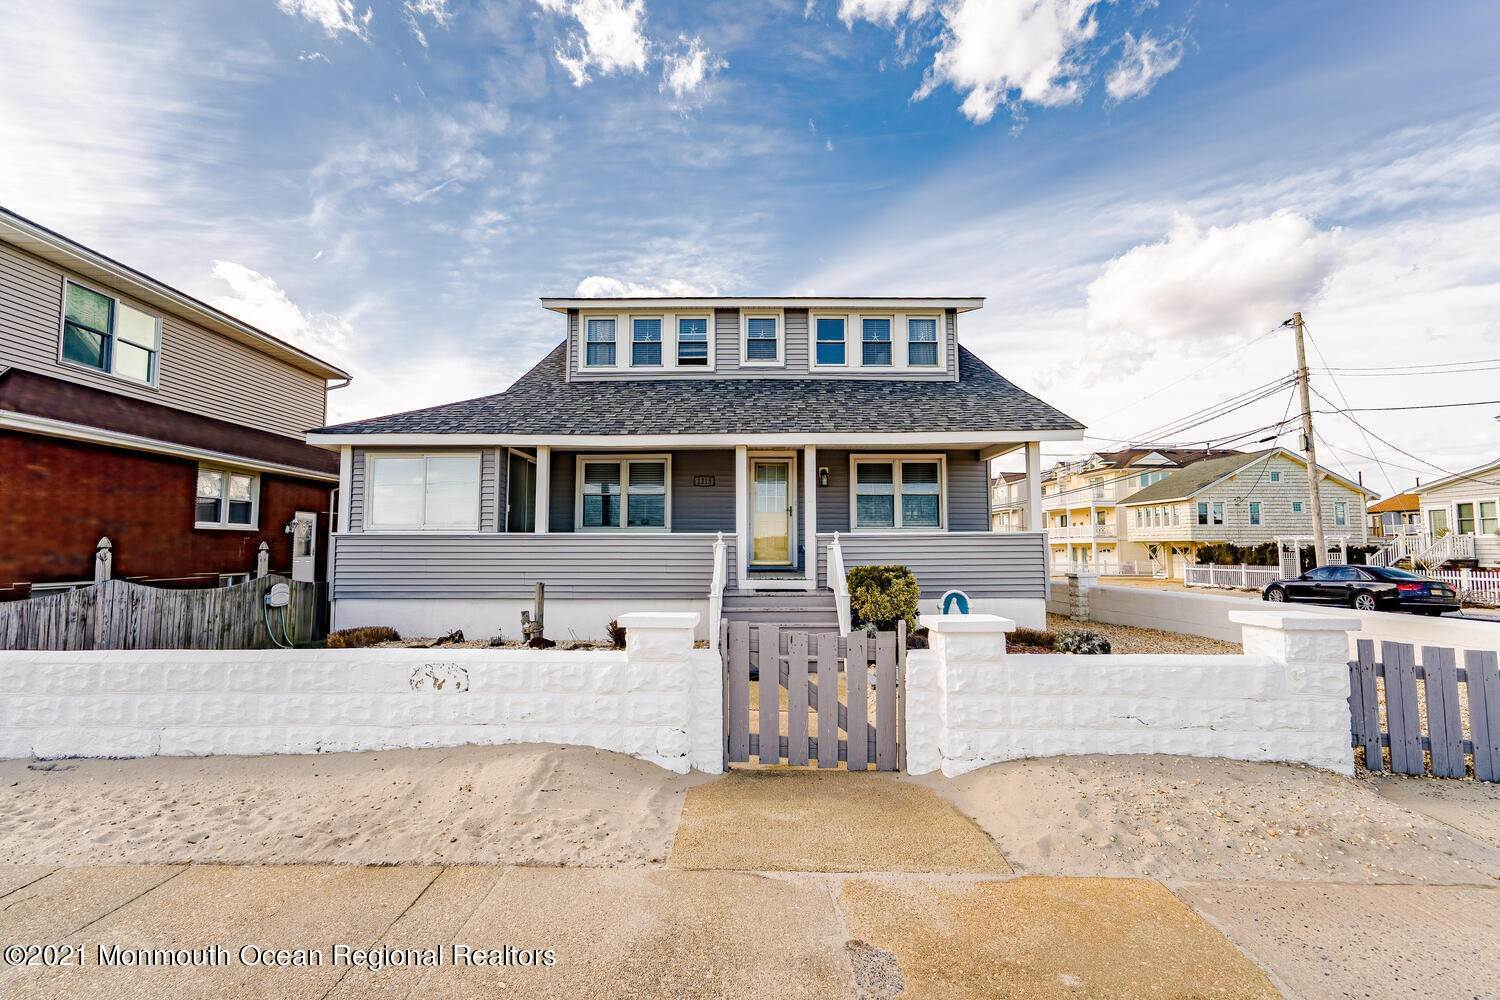 Property for Sale at 1215 Ocean Avenue Seaside Park, New Jersey 08752 United States